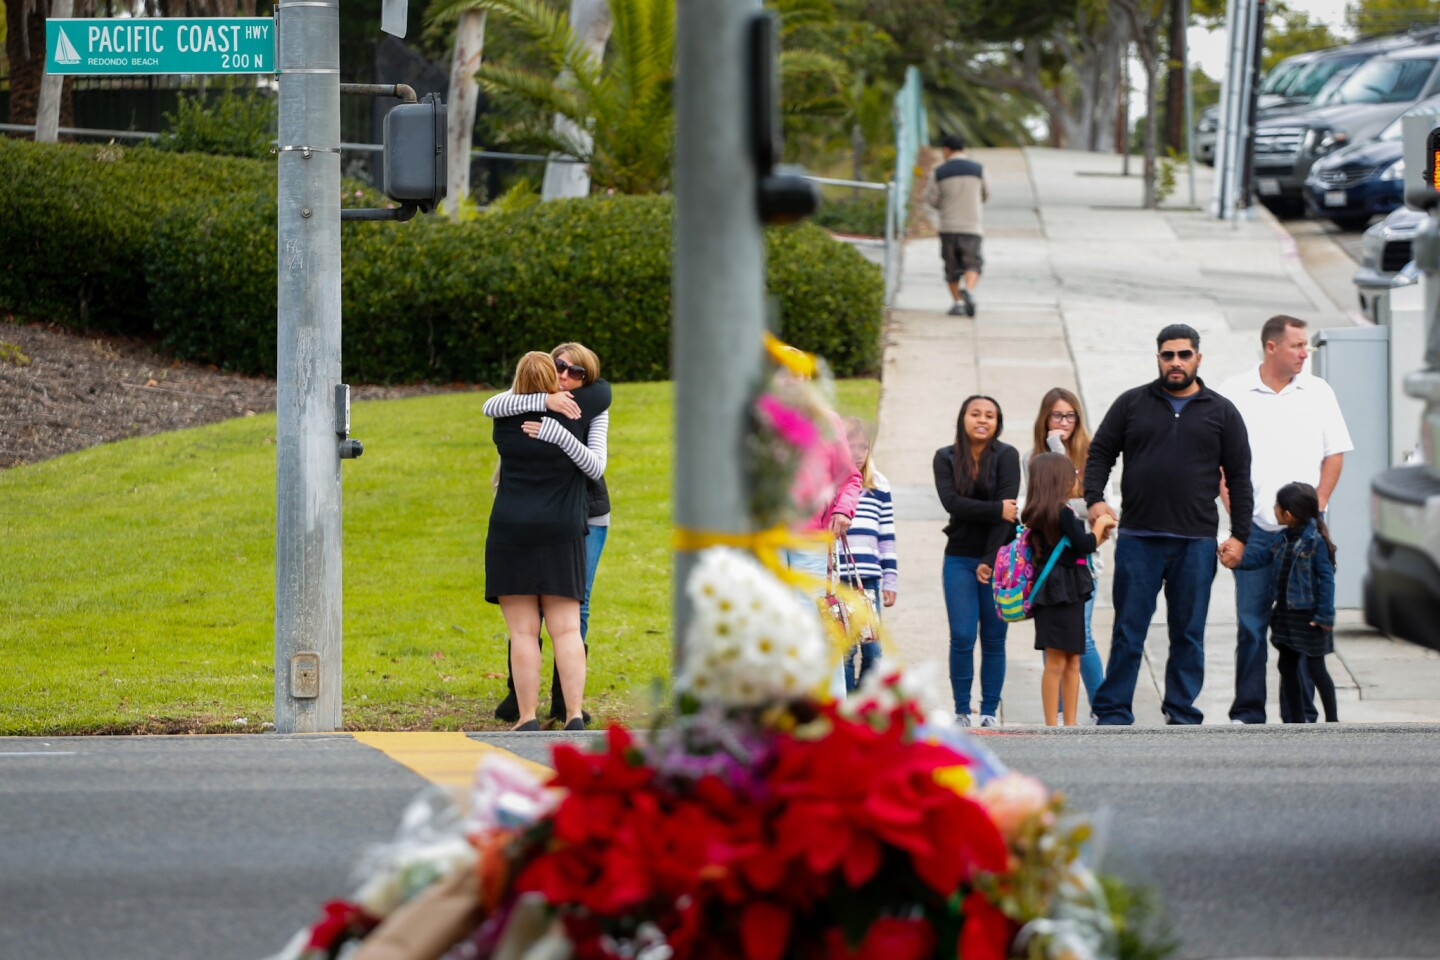 People dropped flowers and stopped at the corner of Vincent Street and Pacific Coast Highway in Redondo Beach near the site of the fatal accident.